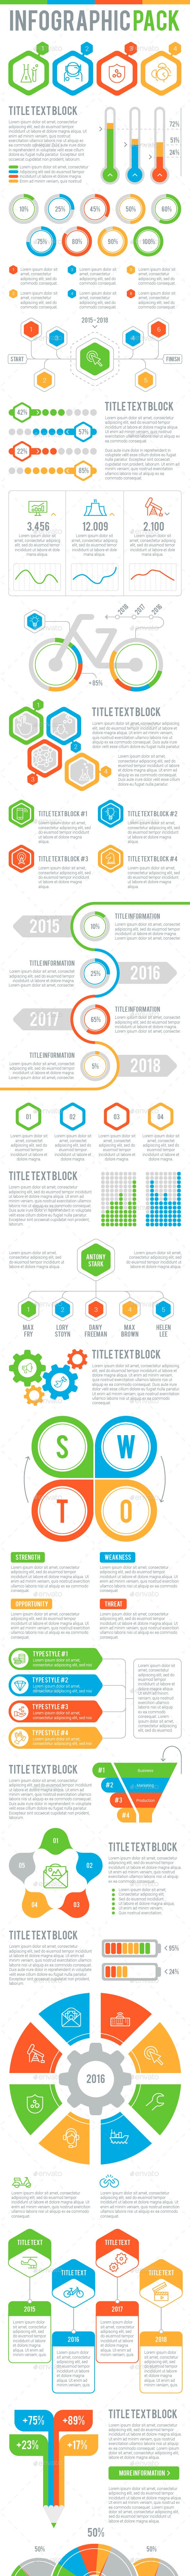 Infographic Pack 1 - Infographics